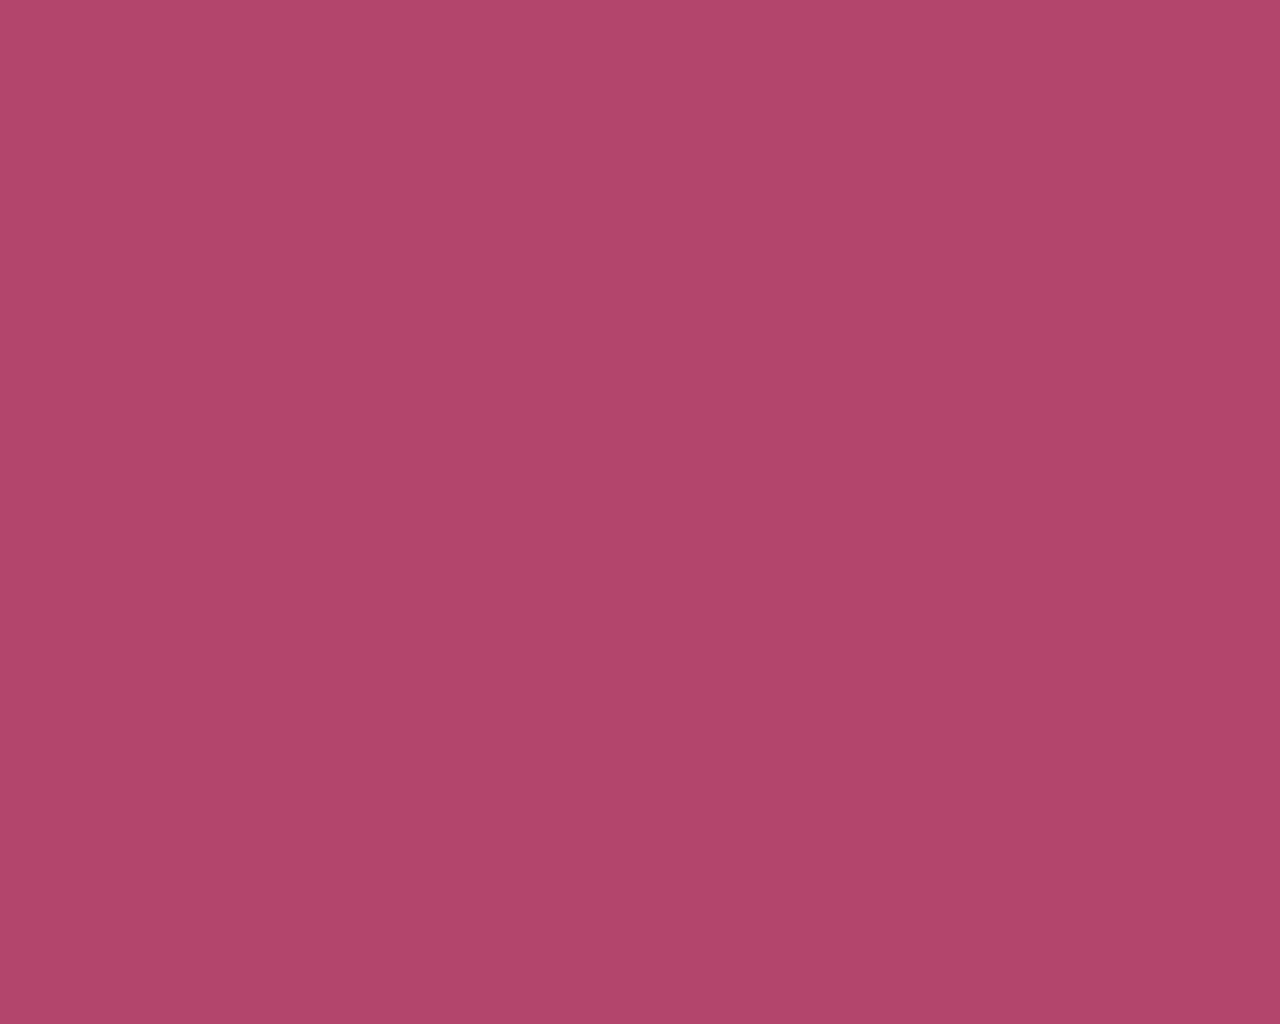 1280x1024 Raspberry Rose Solid Color Background